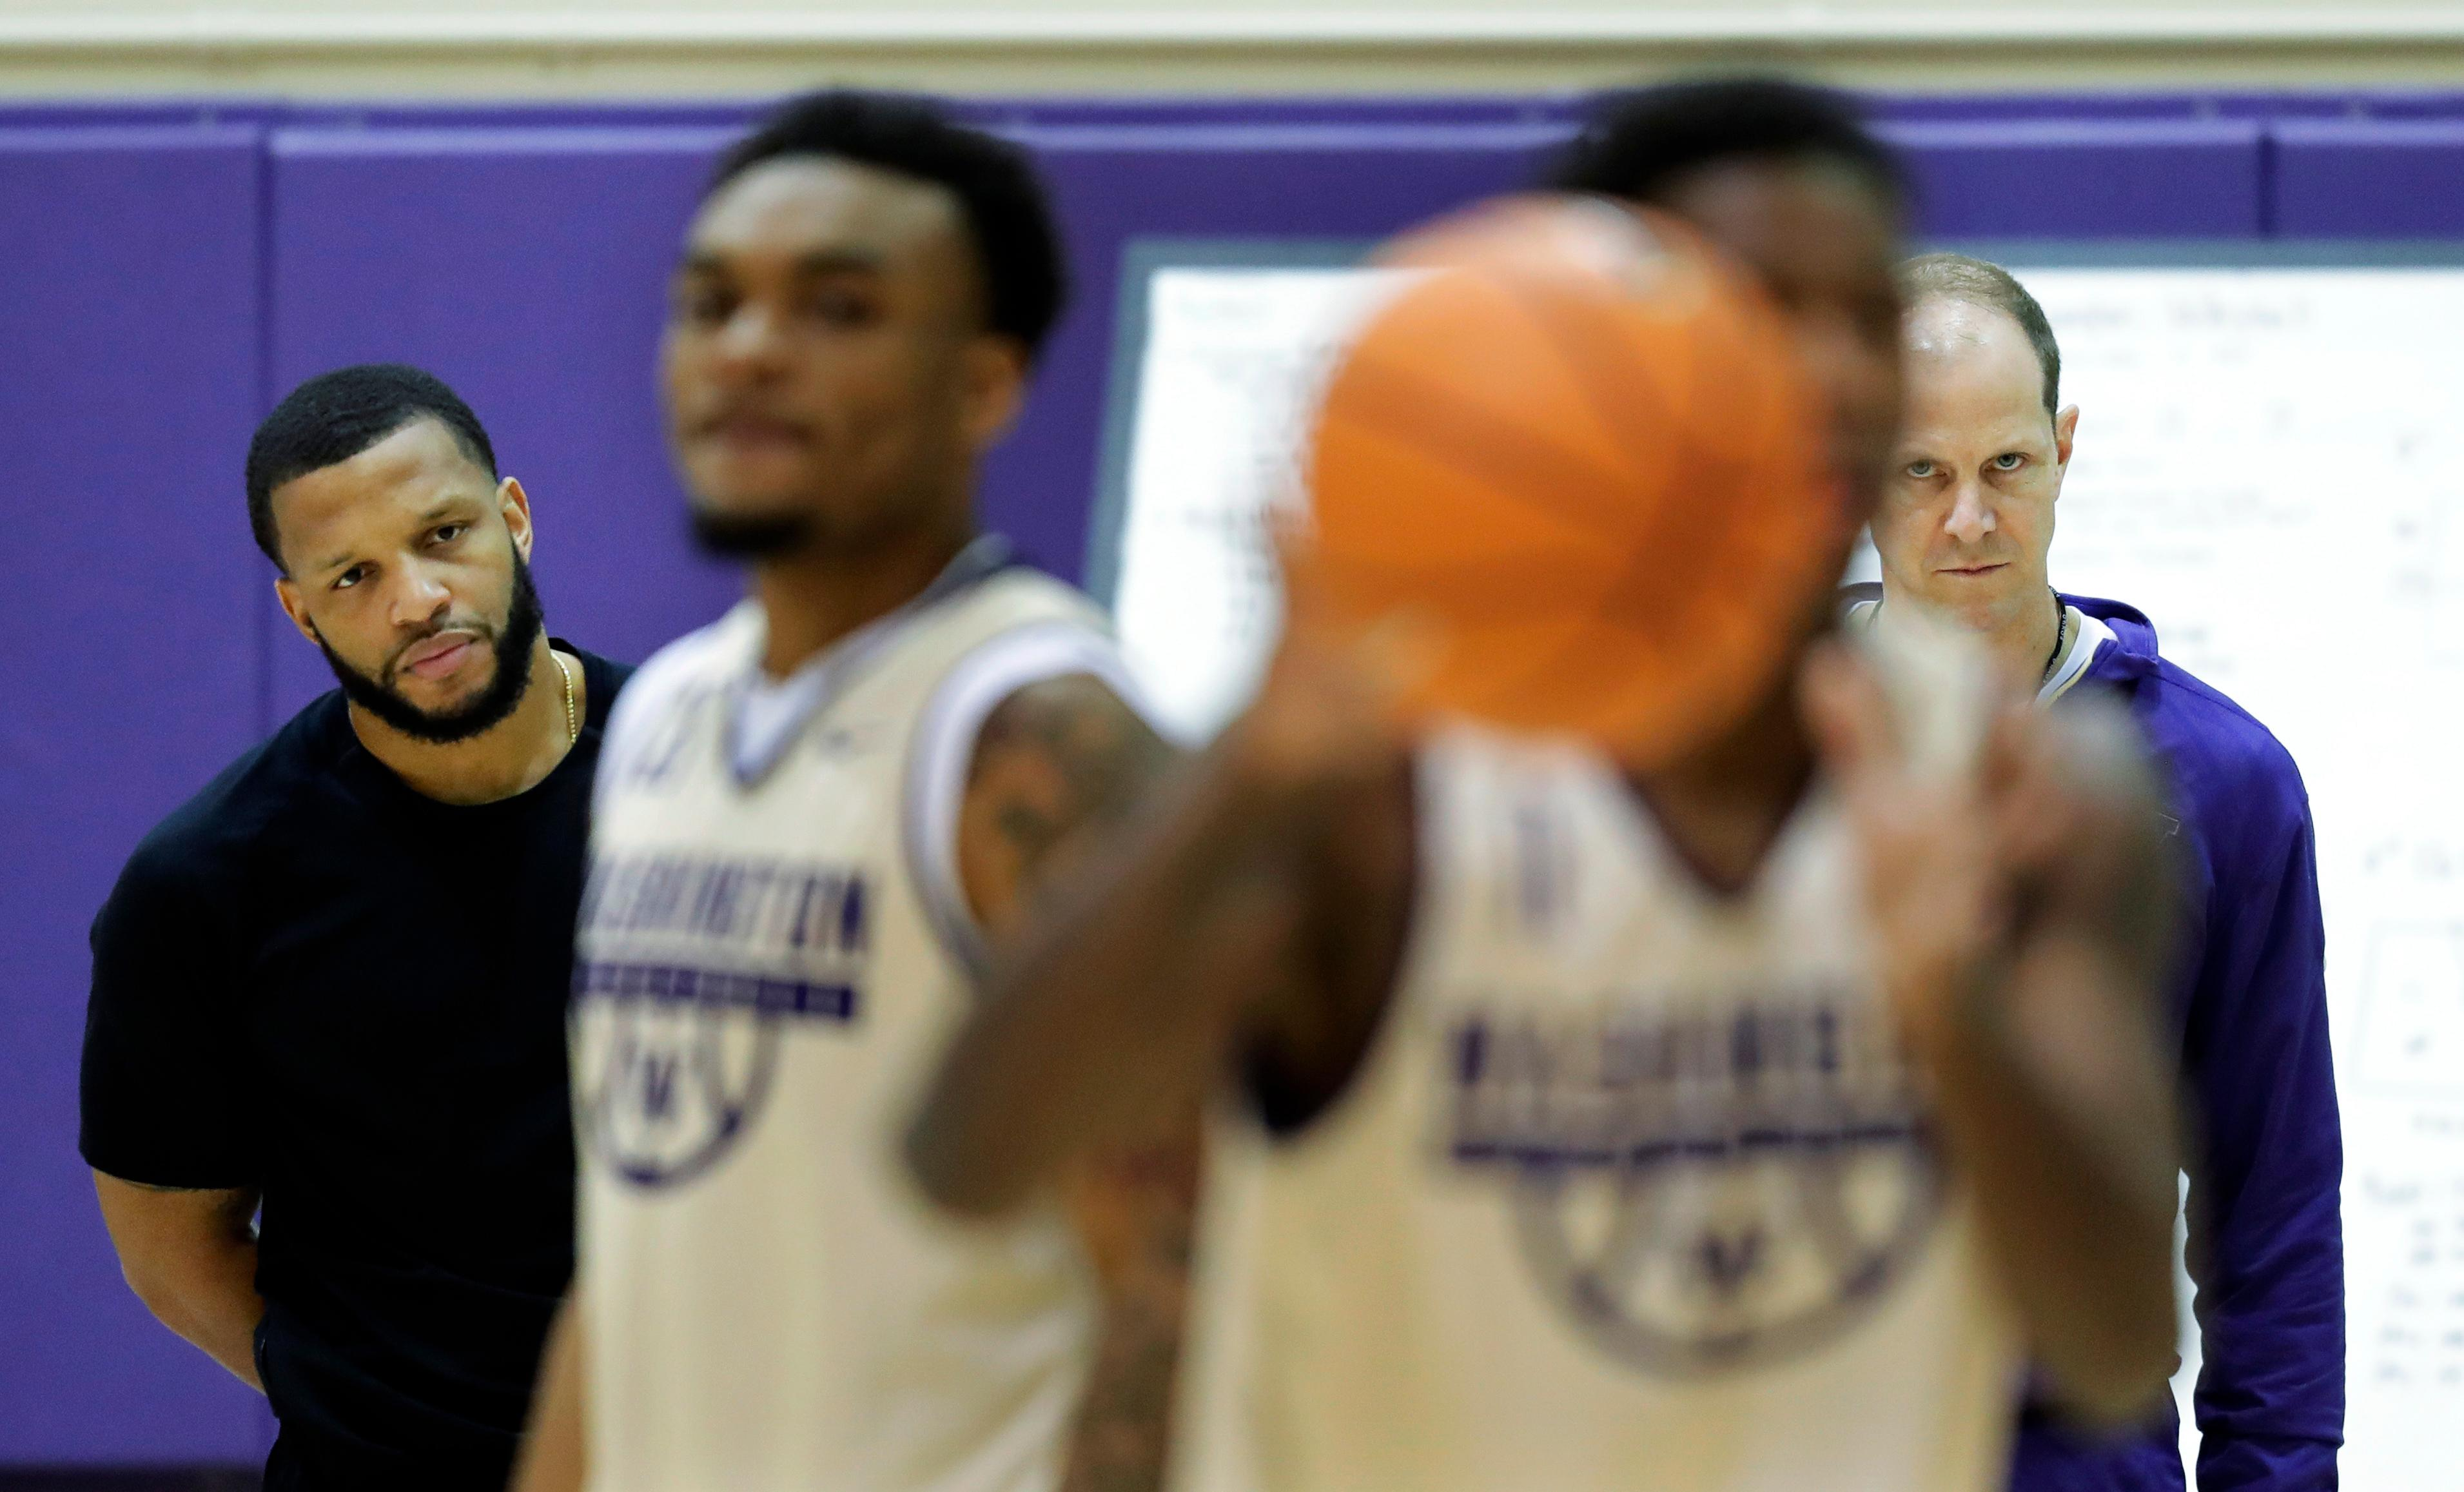 In this Friday, Jan. 26, 2018 photo Washington head coach Mike Hopkins, right, and assistant coach Will Conroy, left, watch as guards Carlos Johnson, second from left, and David Crisp, second from right, take part in a drill during NCAA college basketball practice in Seattle. One of the most surprising stories in college basketball is what Hopkins is doing in his first season at Washington and how the Huskies are in the conversation for an NCAA bid entering February. (AP Photo/Ted S. Warren)